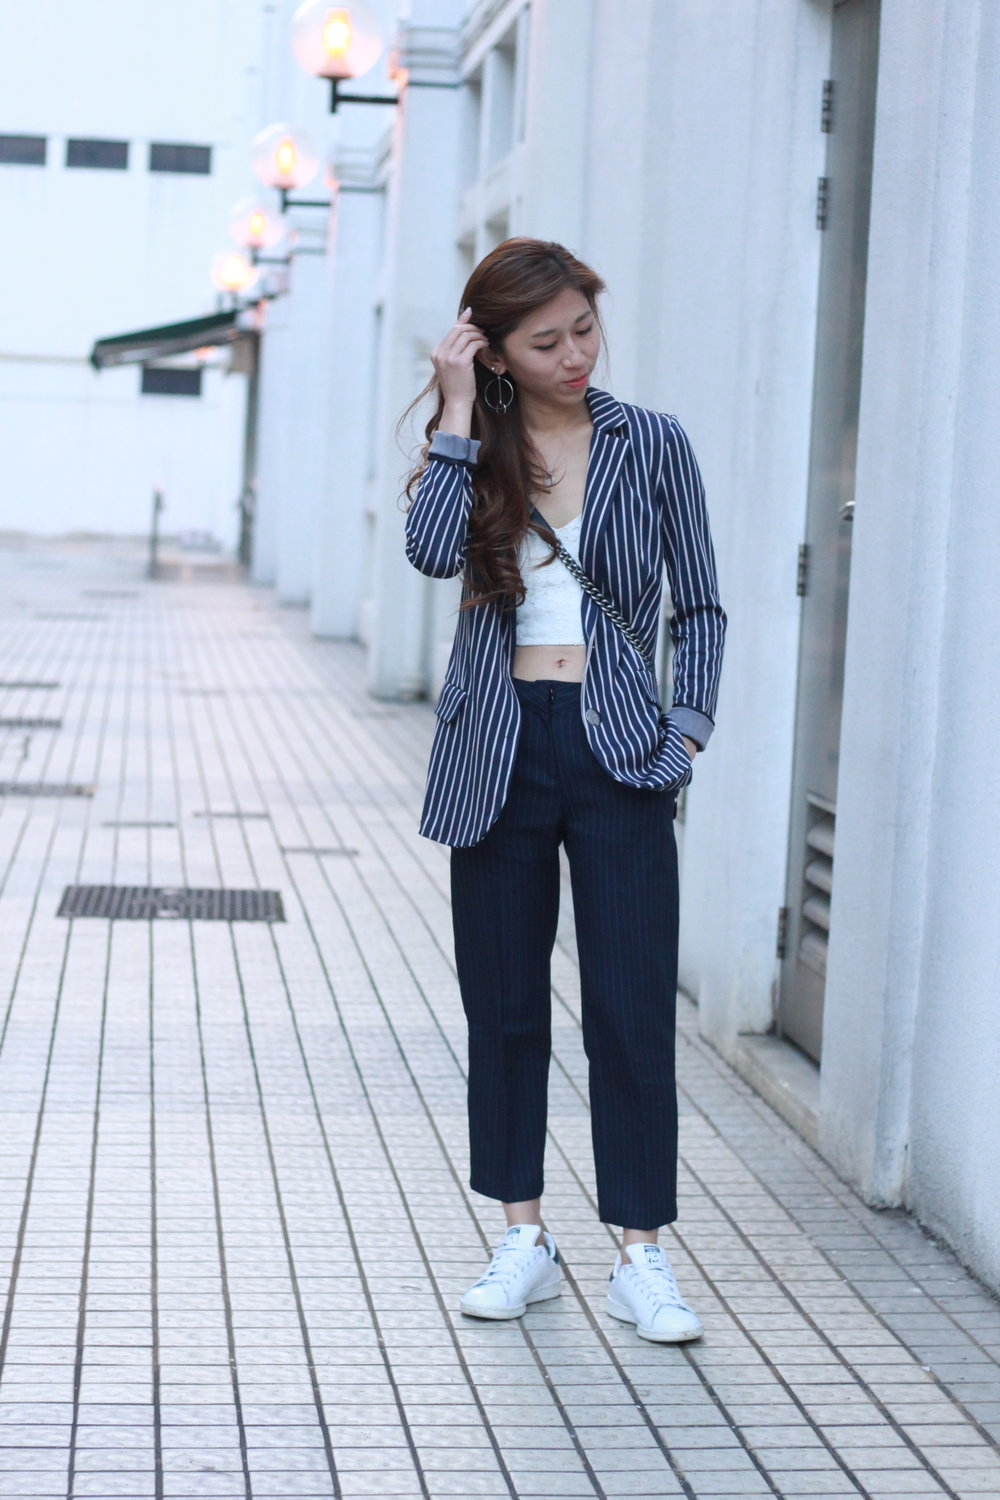 Max&Co jacquard jersey blazer  /  Topshop  white bralette / Striped pants from Korea /  Adidas Stan Smith  /  Chanel boy  calfskin /  Emoda  earrings